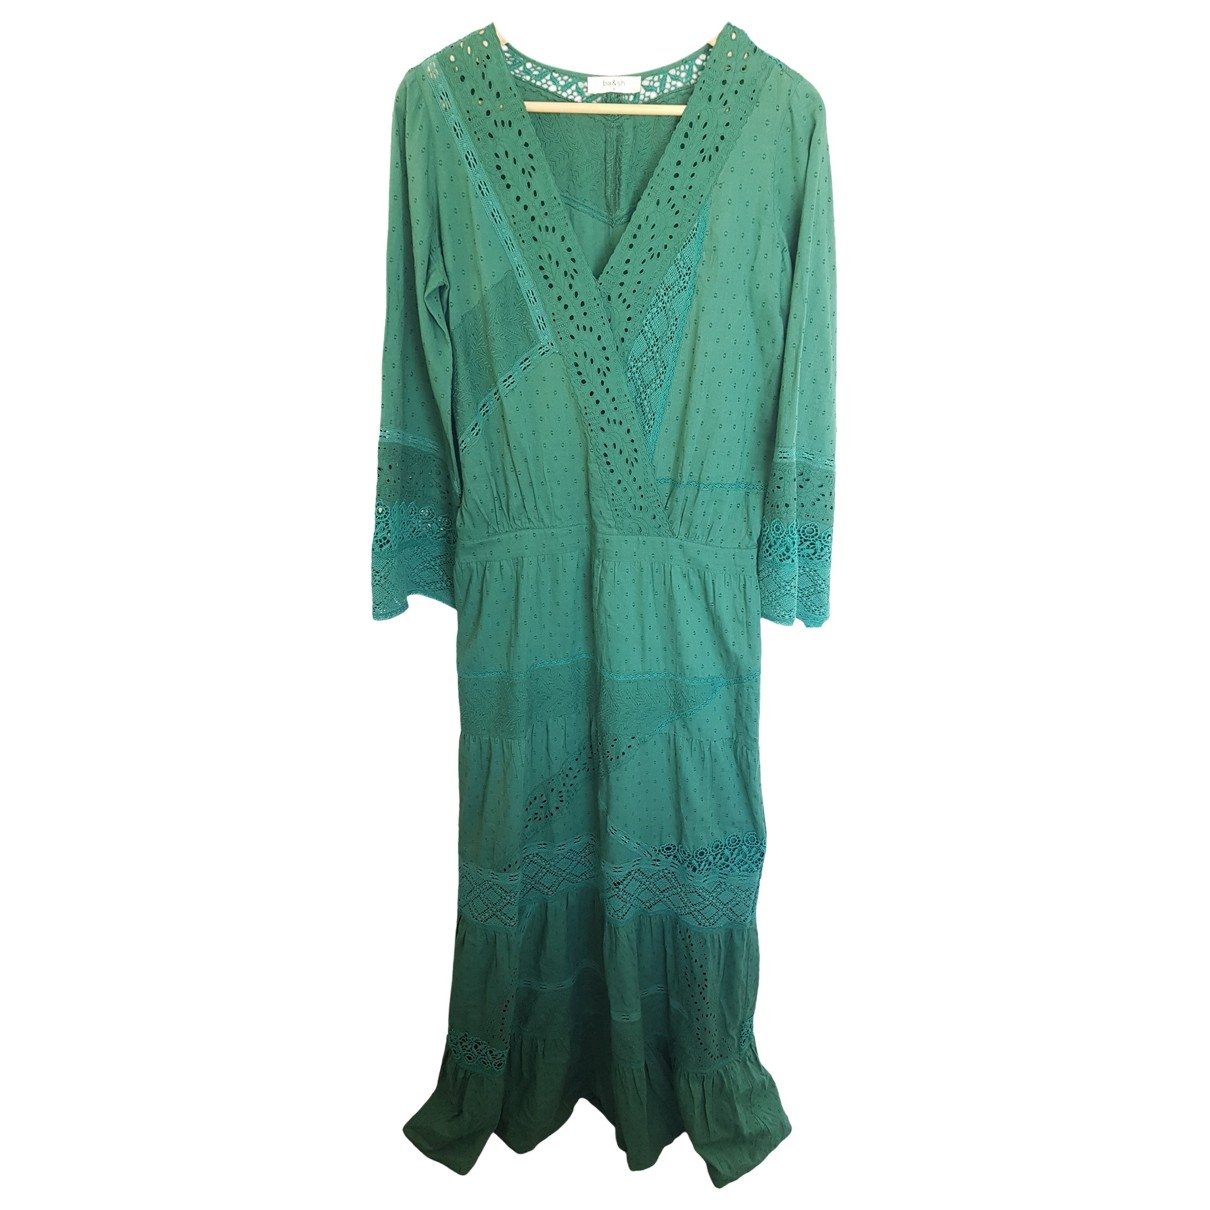 Ba&sh \N Green Cotton dress for Women 38 FR